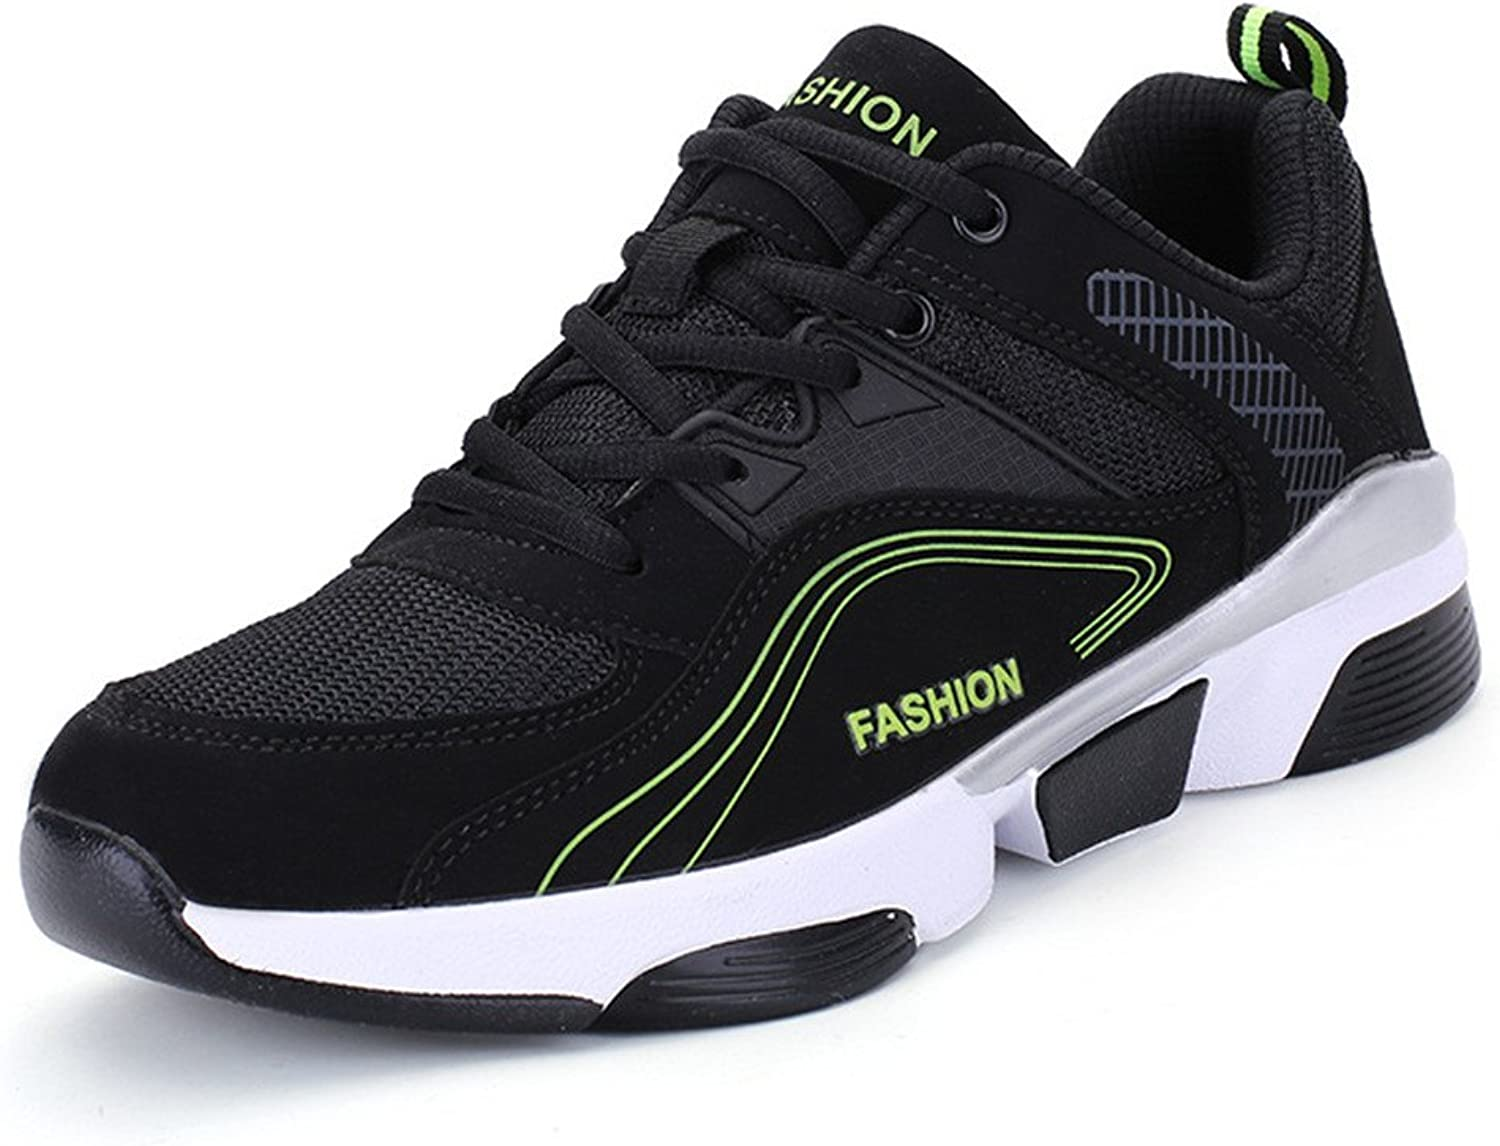 SKY-Maria Men's Fashion Sports shoes Outdoor Non-Slip Trainers Breathable Running shoes Comfortable Light Large Size Increase shoes 39-45